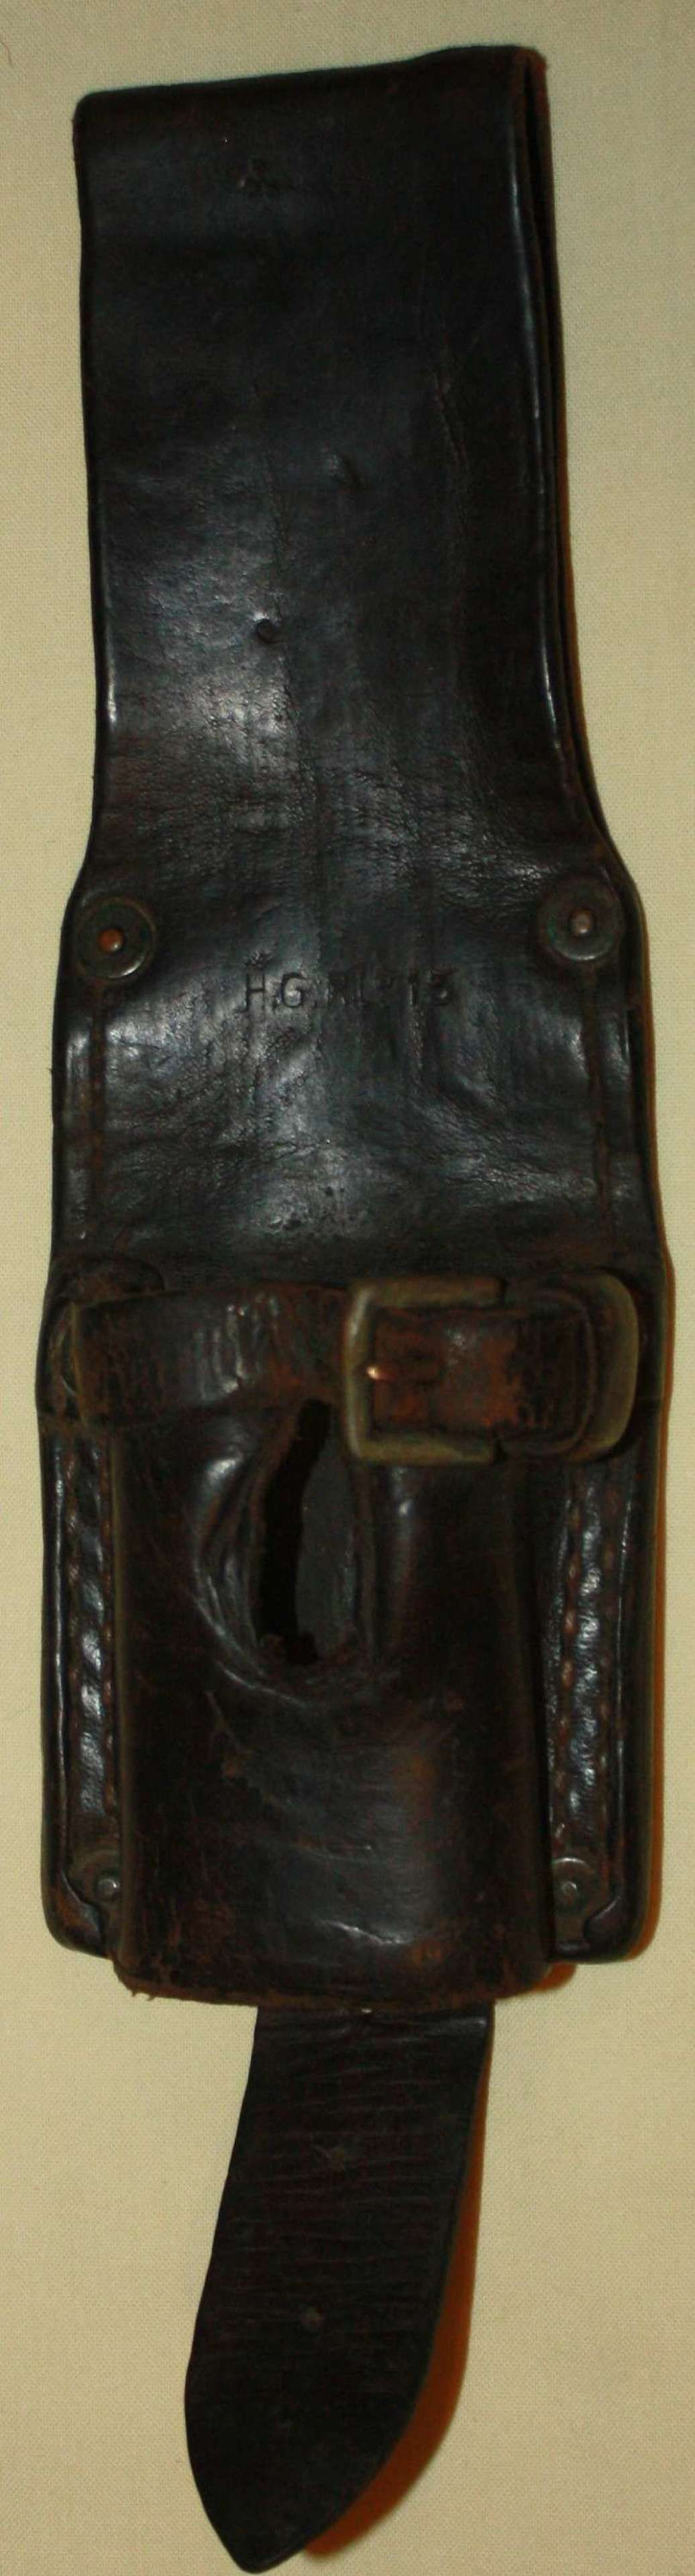 A 1915 DATED 14 PATTERN LEATHER EQUIPMENT BAYONET FROG